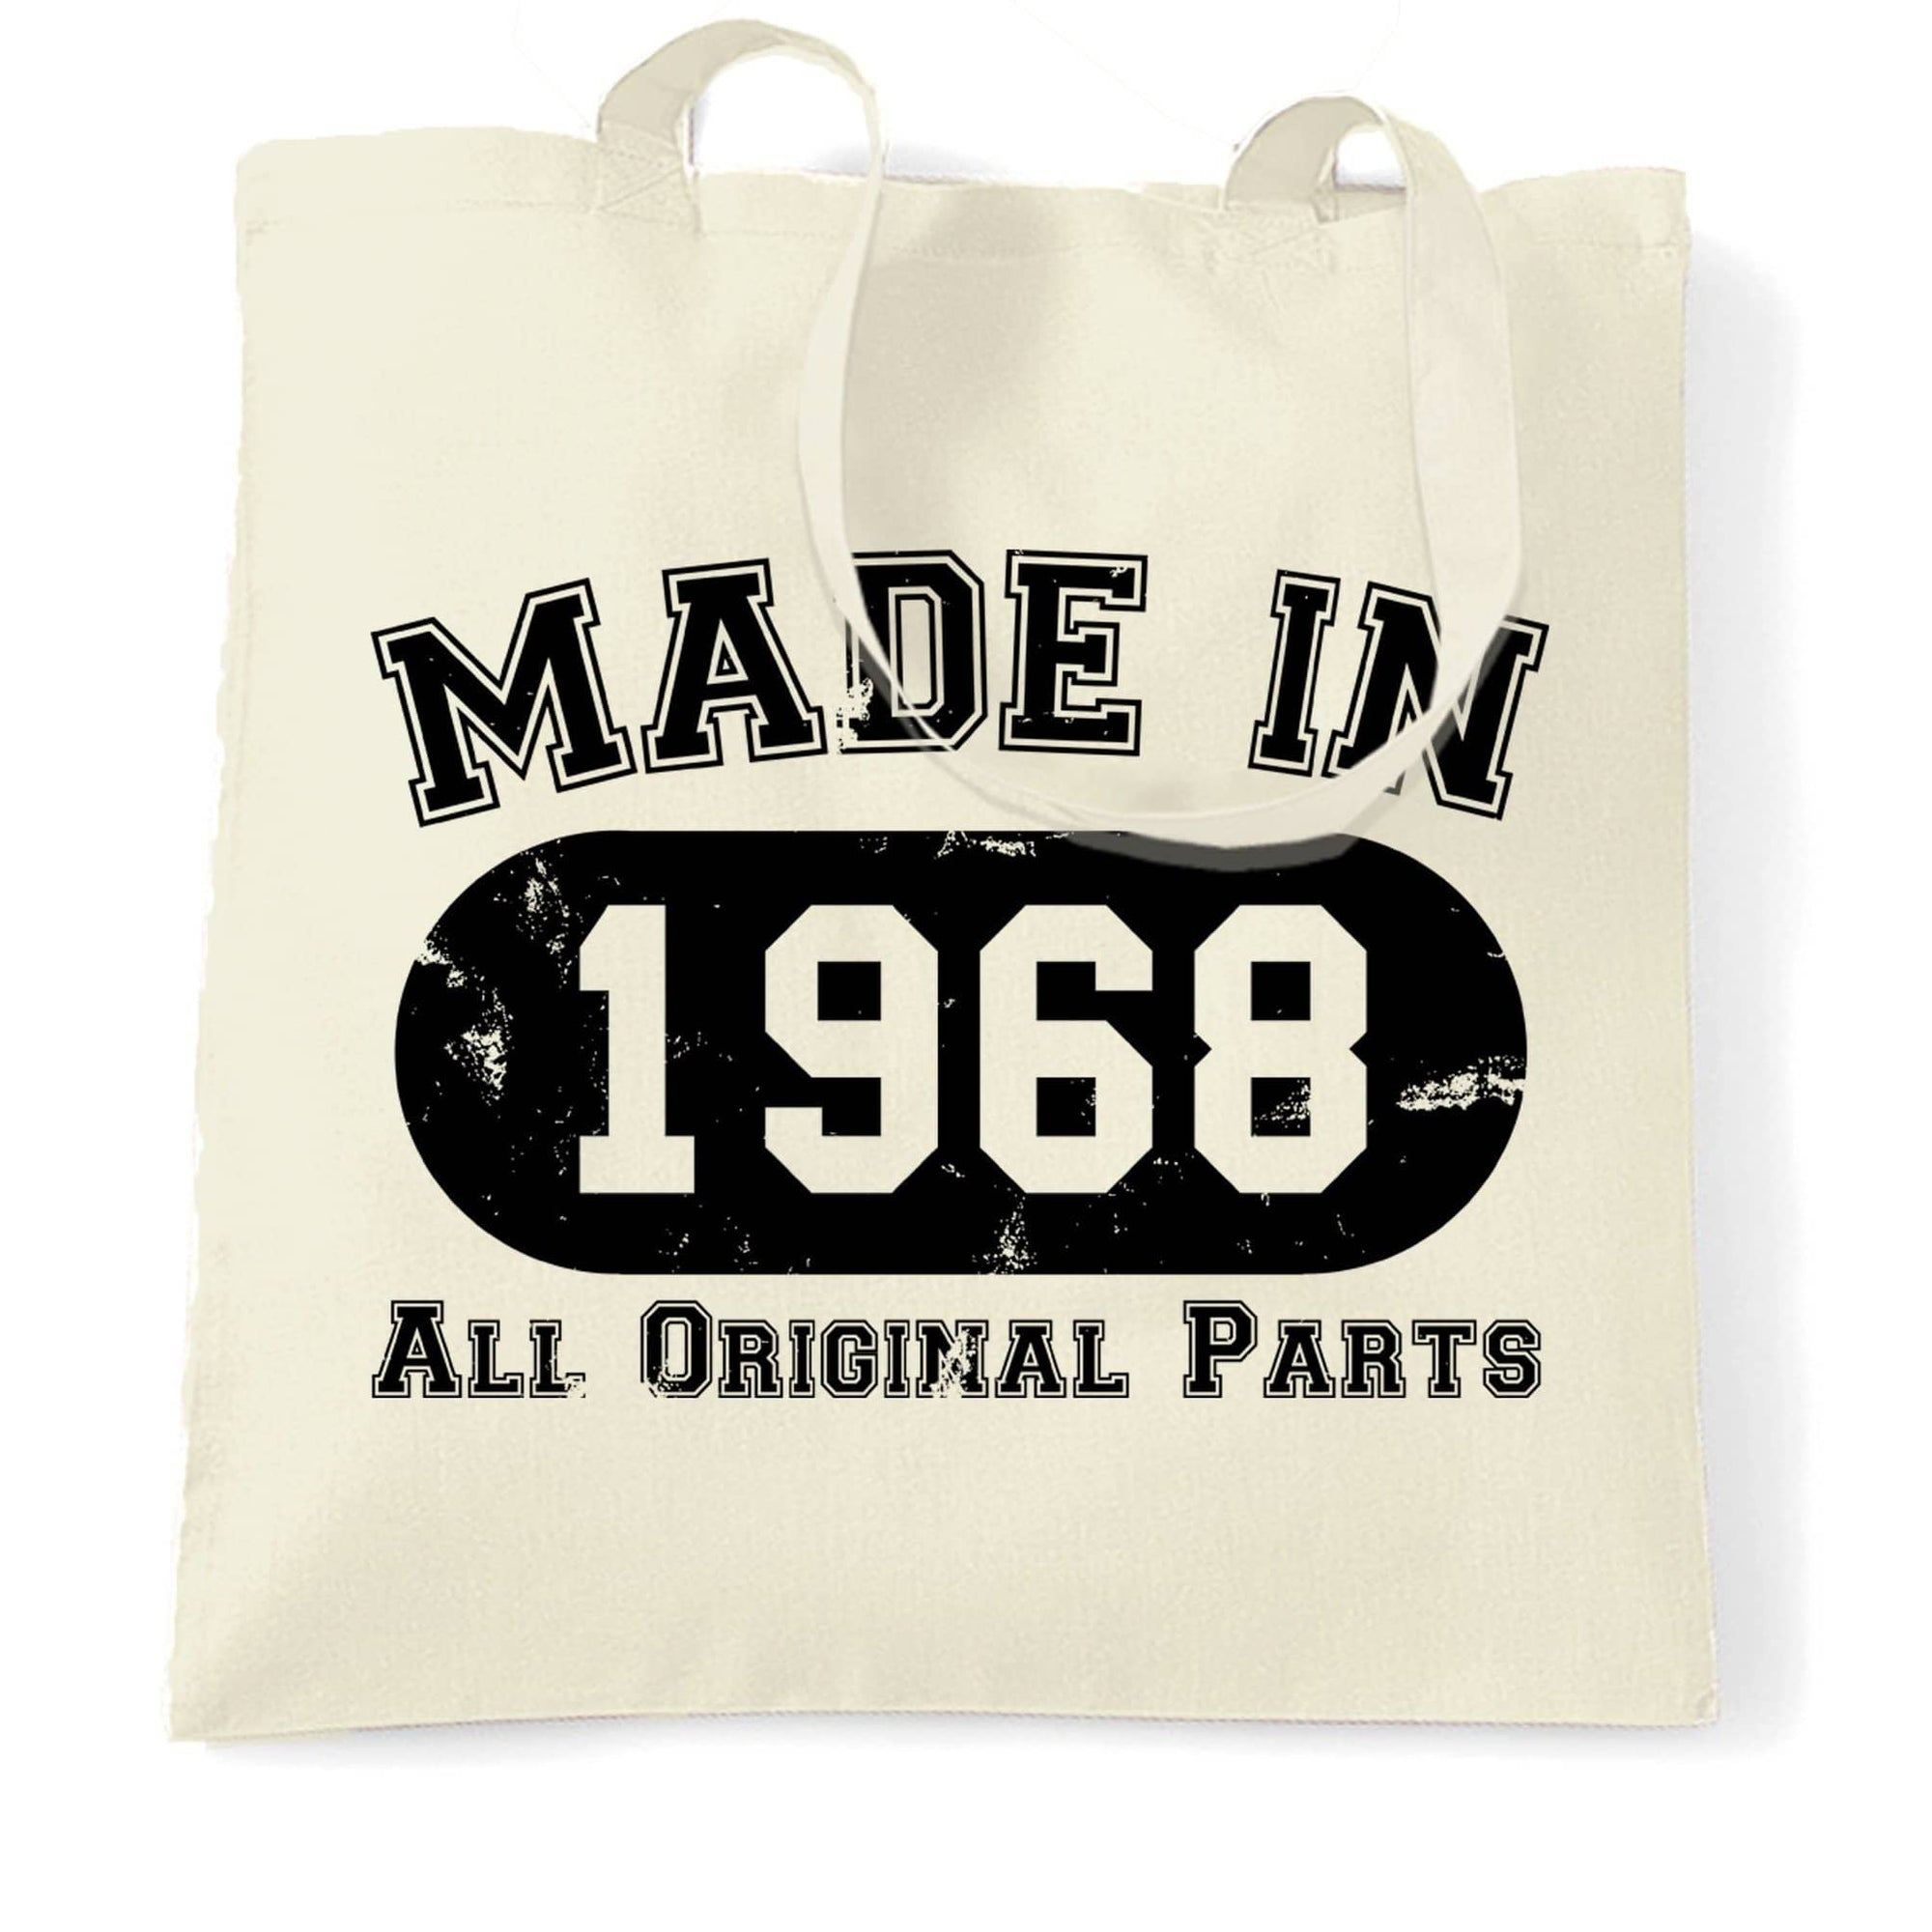 Made in 1968 All Original Parts Tote Bag [Distressed]